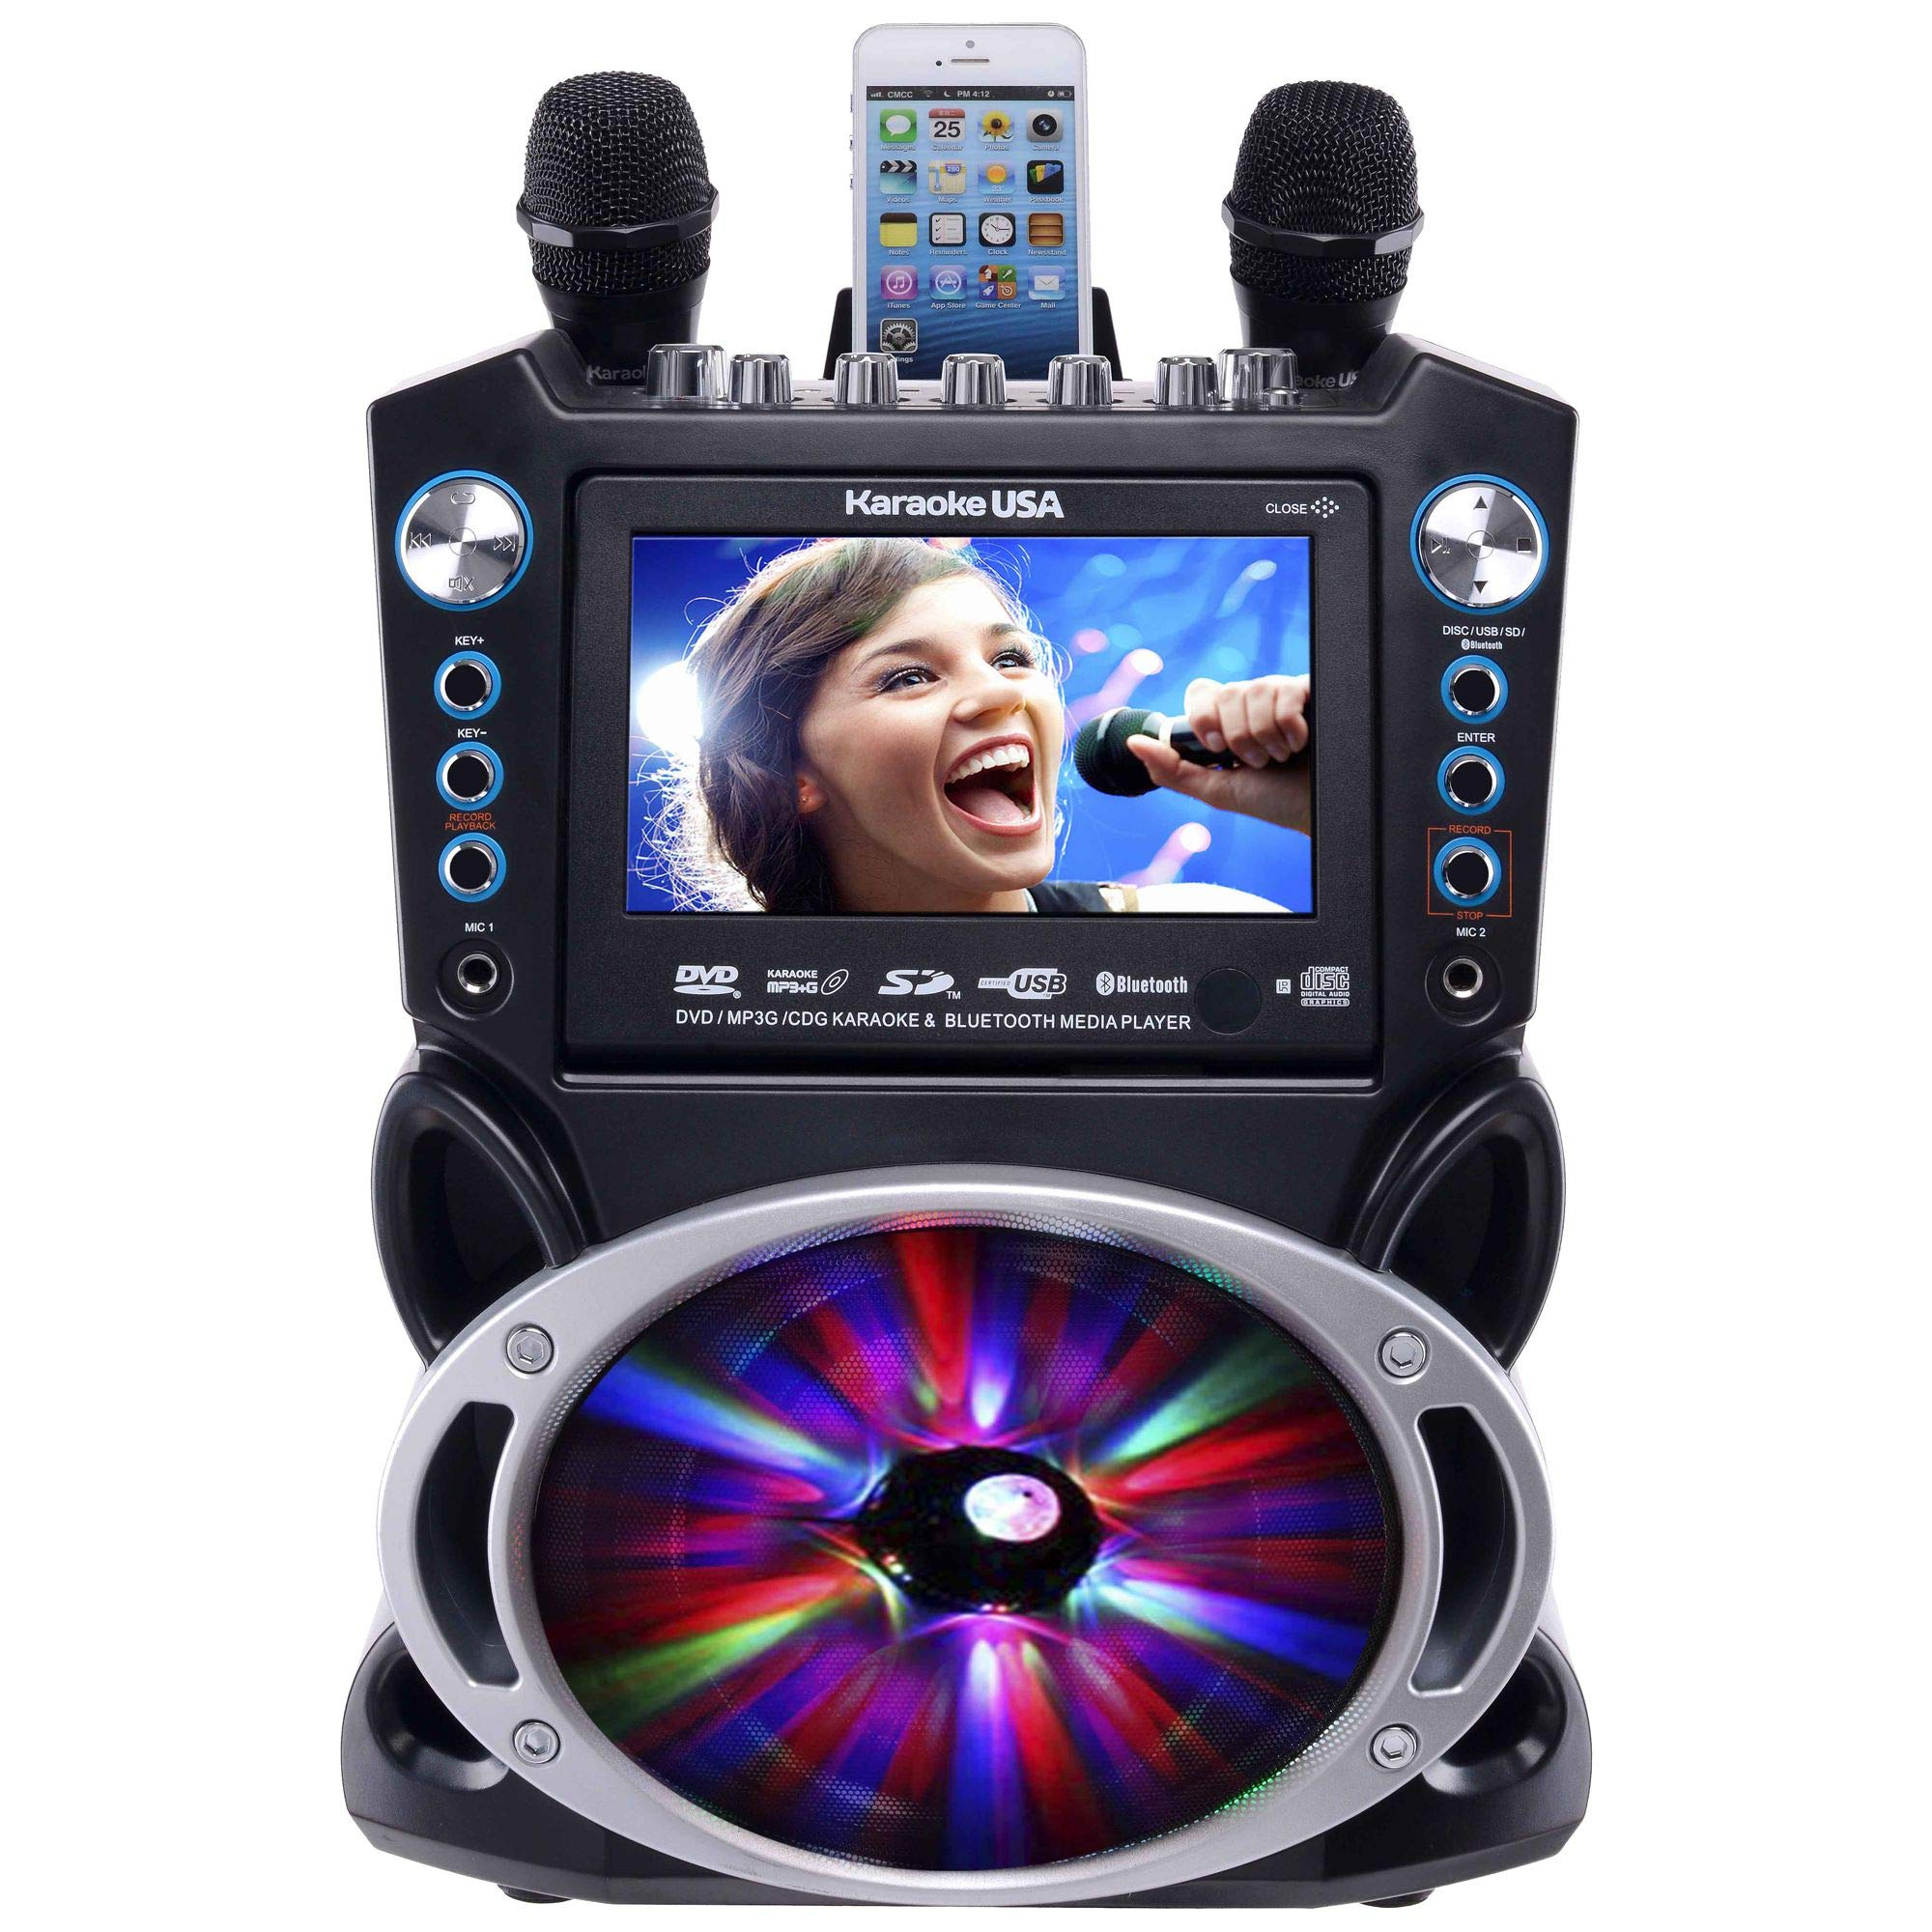 Karaoke USA GF842 Machine Bluetooth